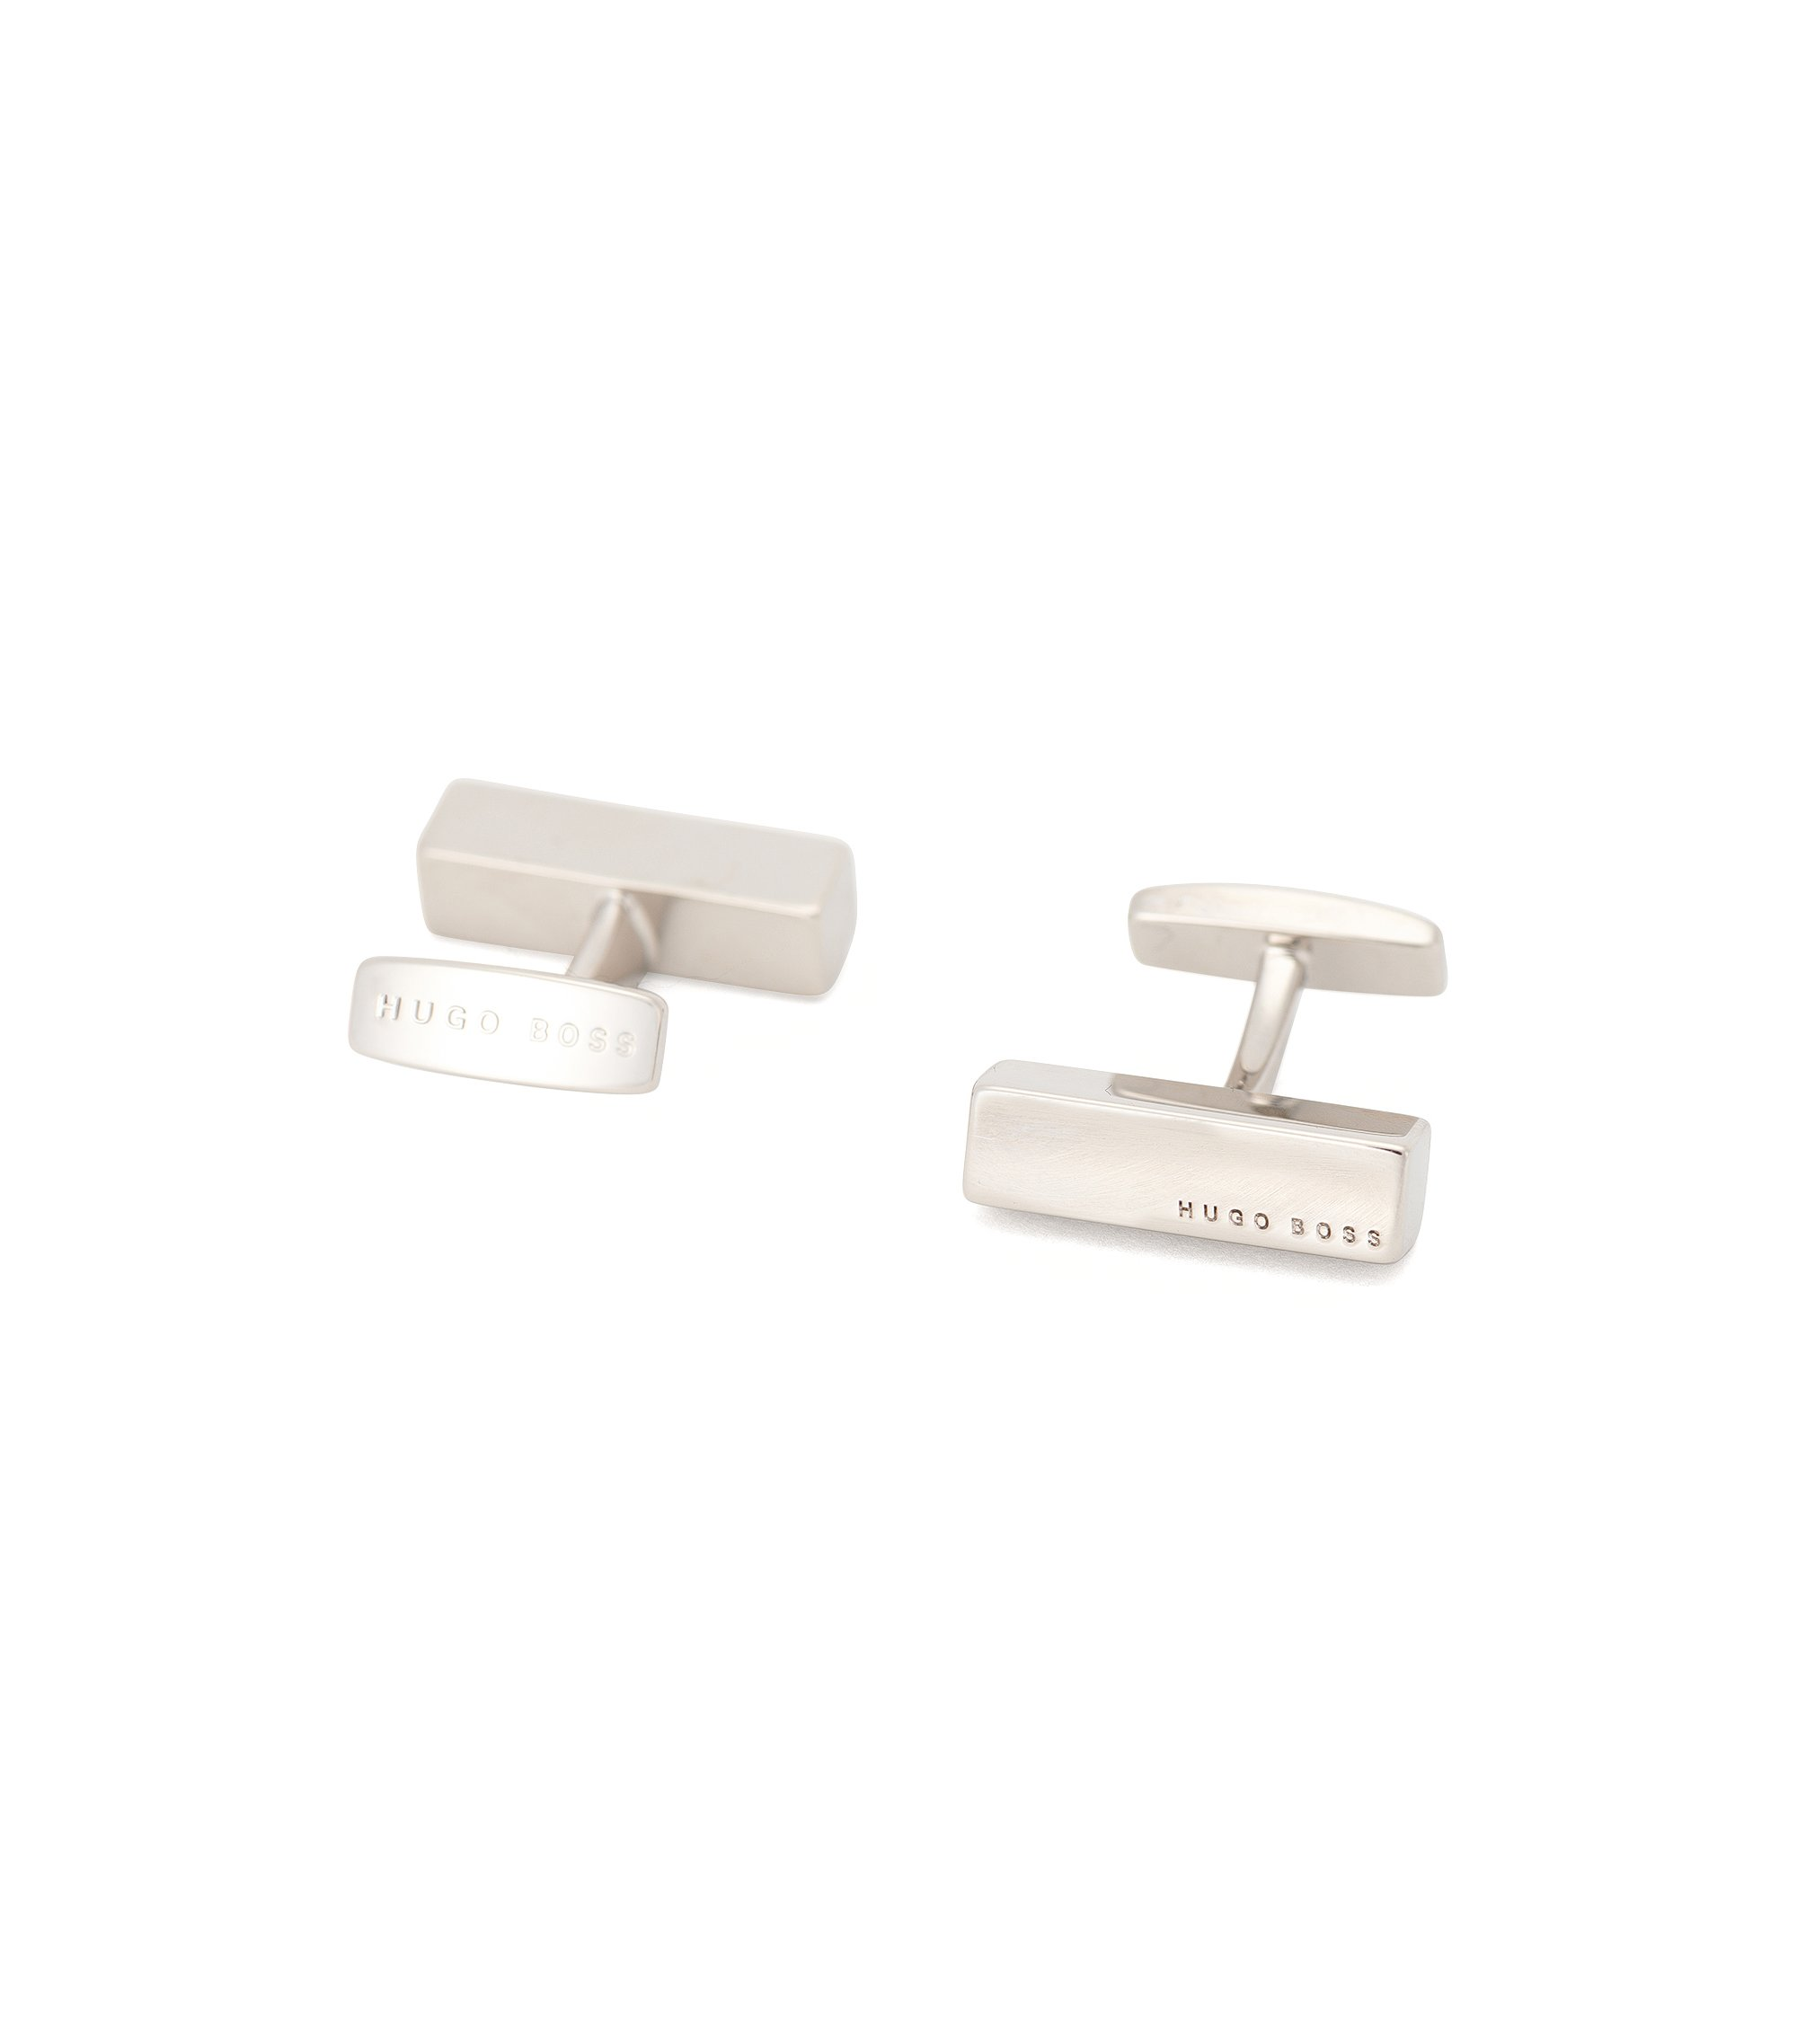 BOSS Hugo Boss T-Knot Silver-Plated Cufflinks in Passementerie Style One Size Silver